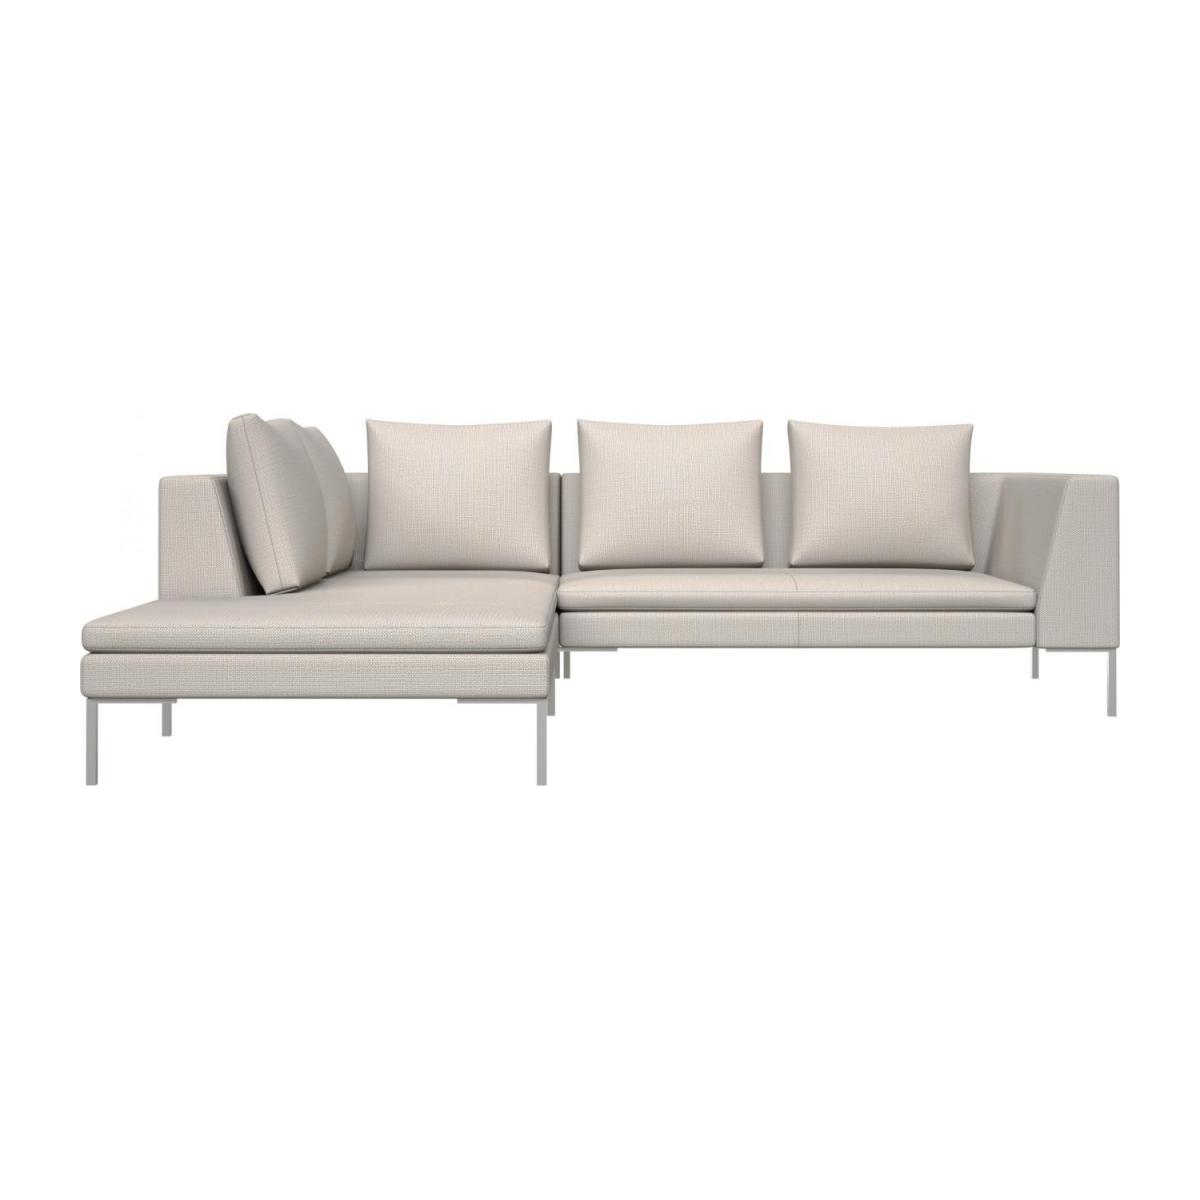 2 seater sofa with chaise longue on the left in Fasoli fabric, snow white  n°2